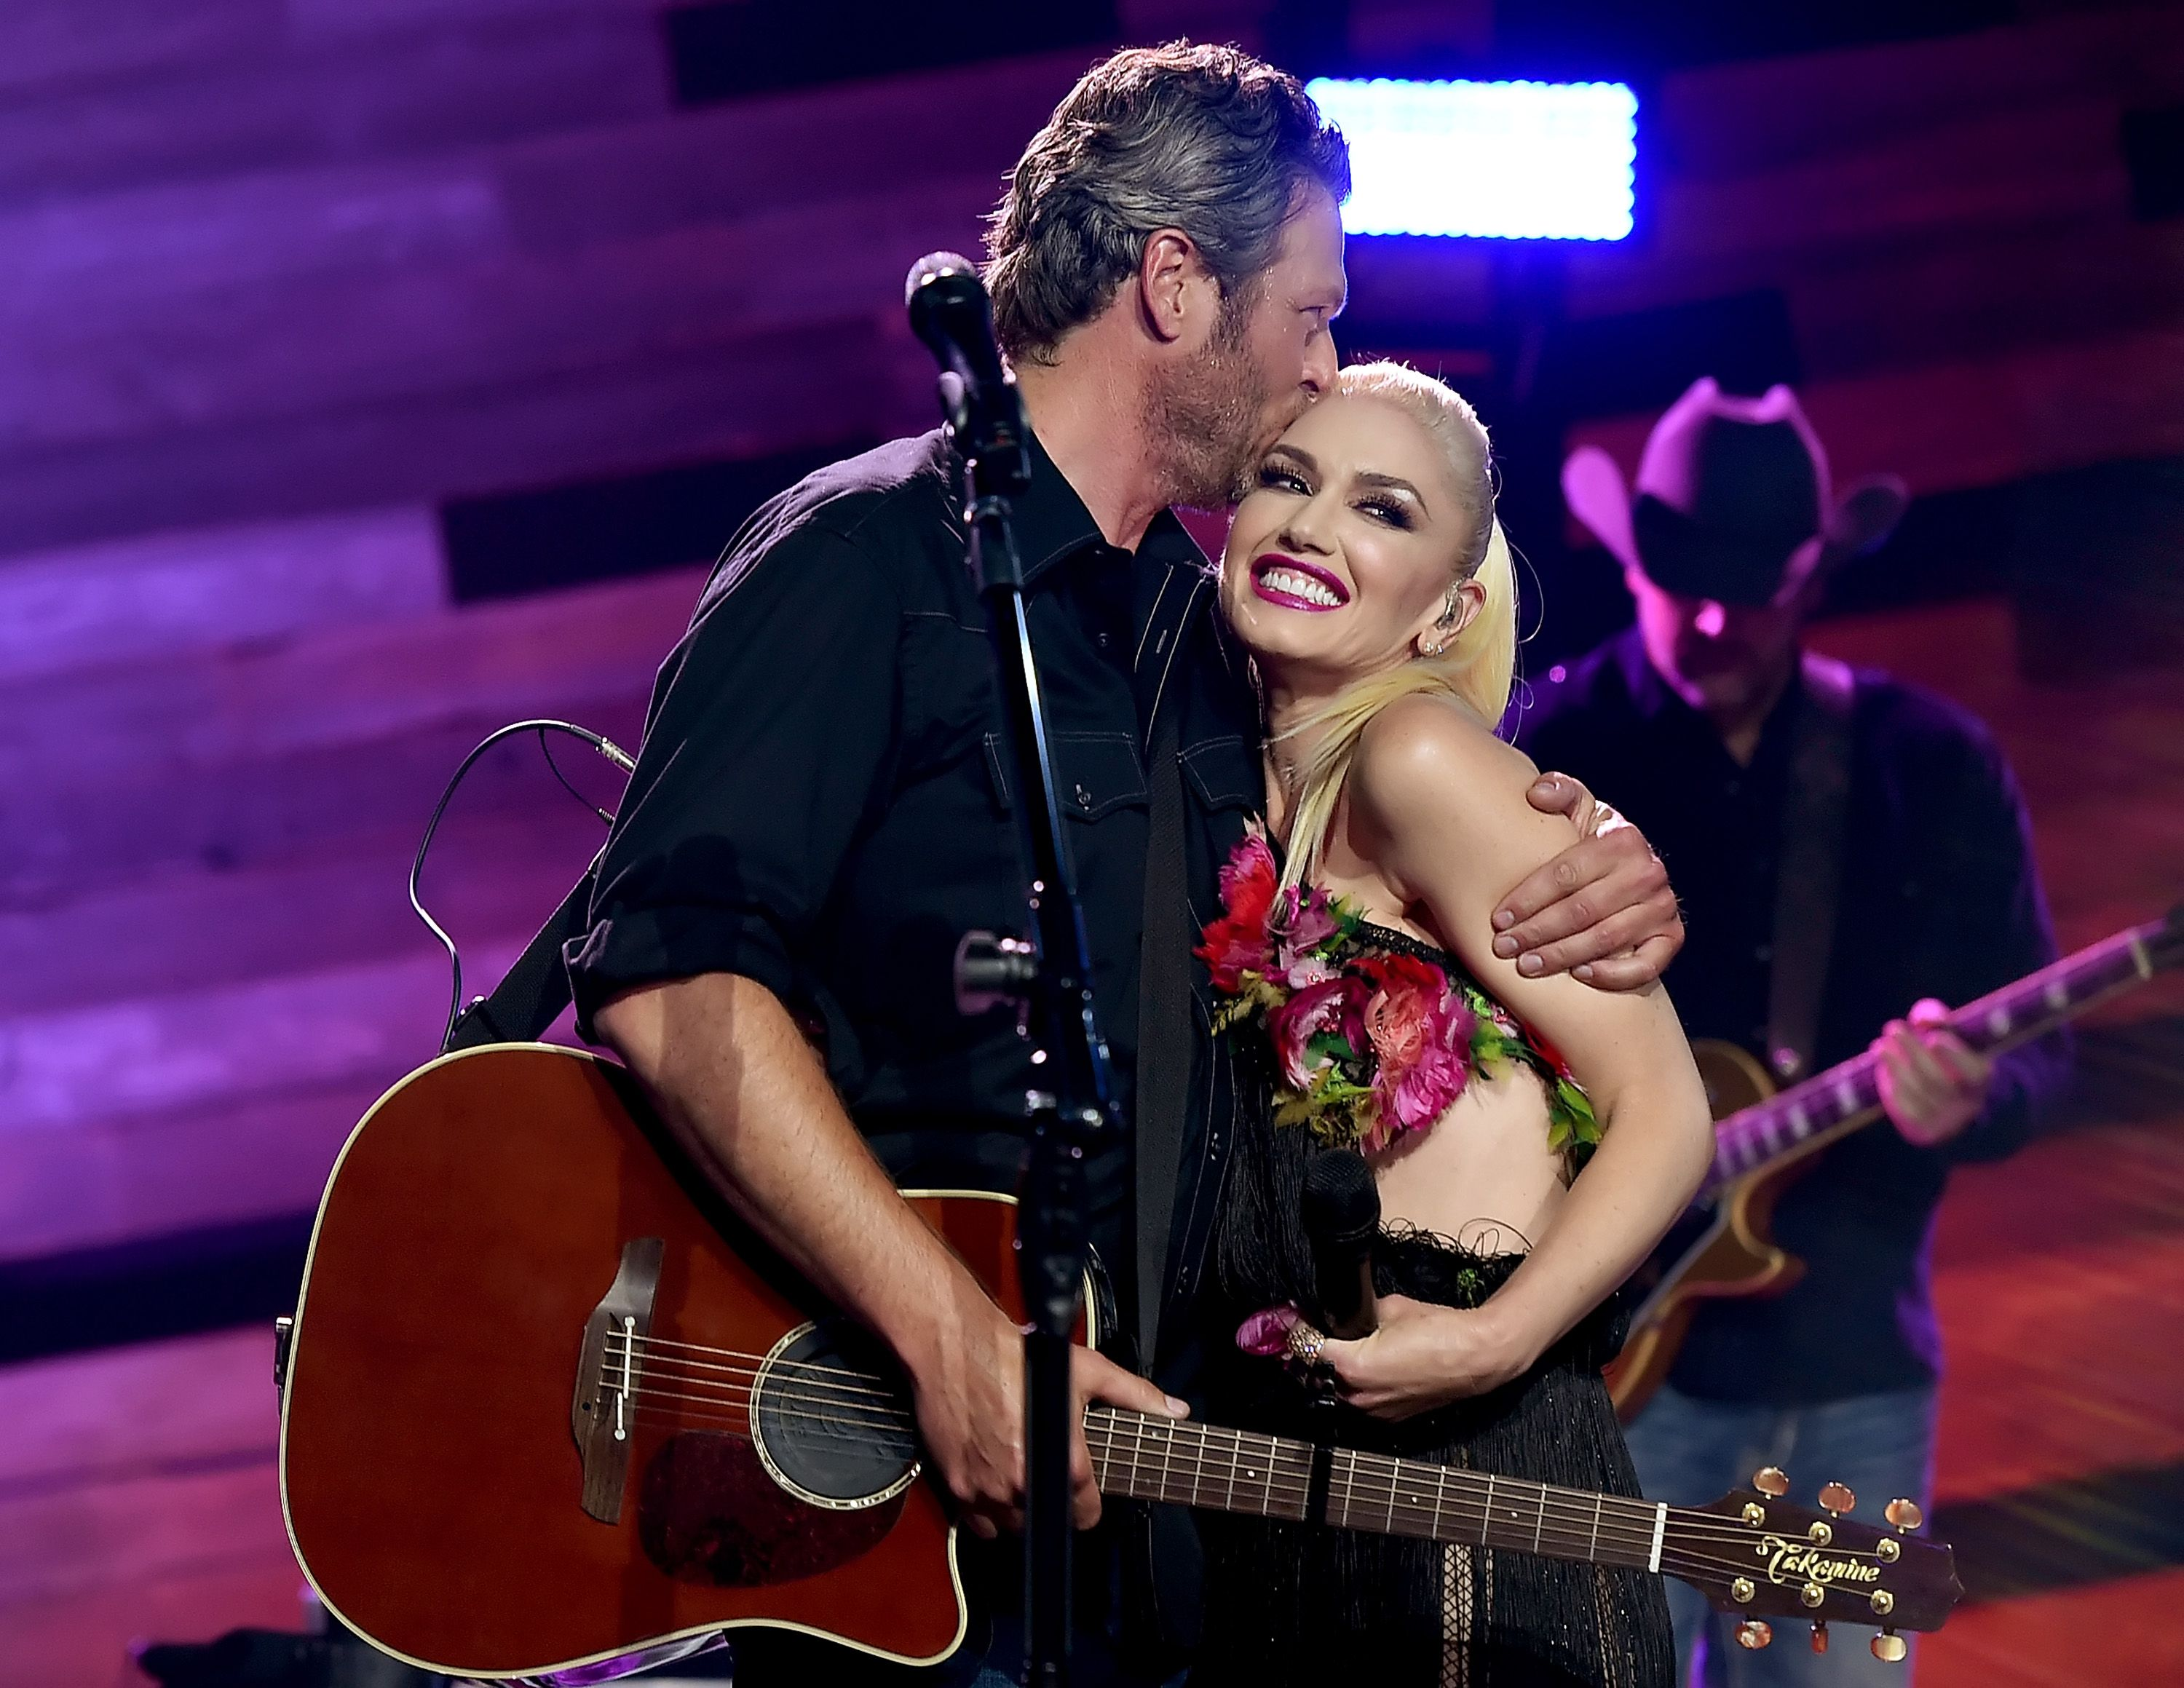 Blake Shelton and Gwen Stefani at the iHeartRadio Theater in Burbank, California in 2016 | Source: Getty Images